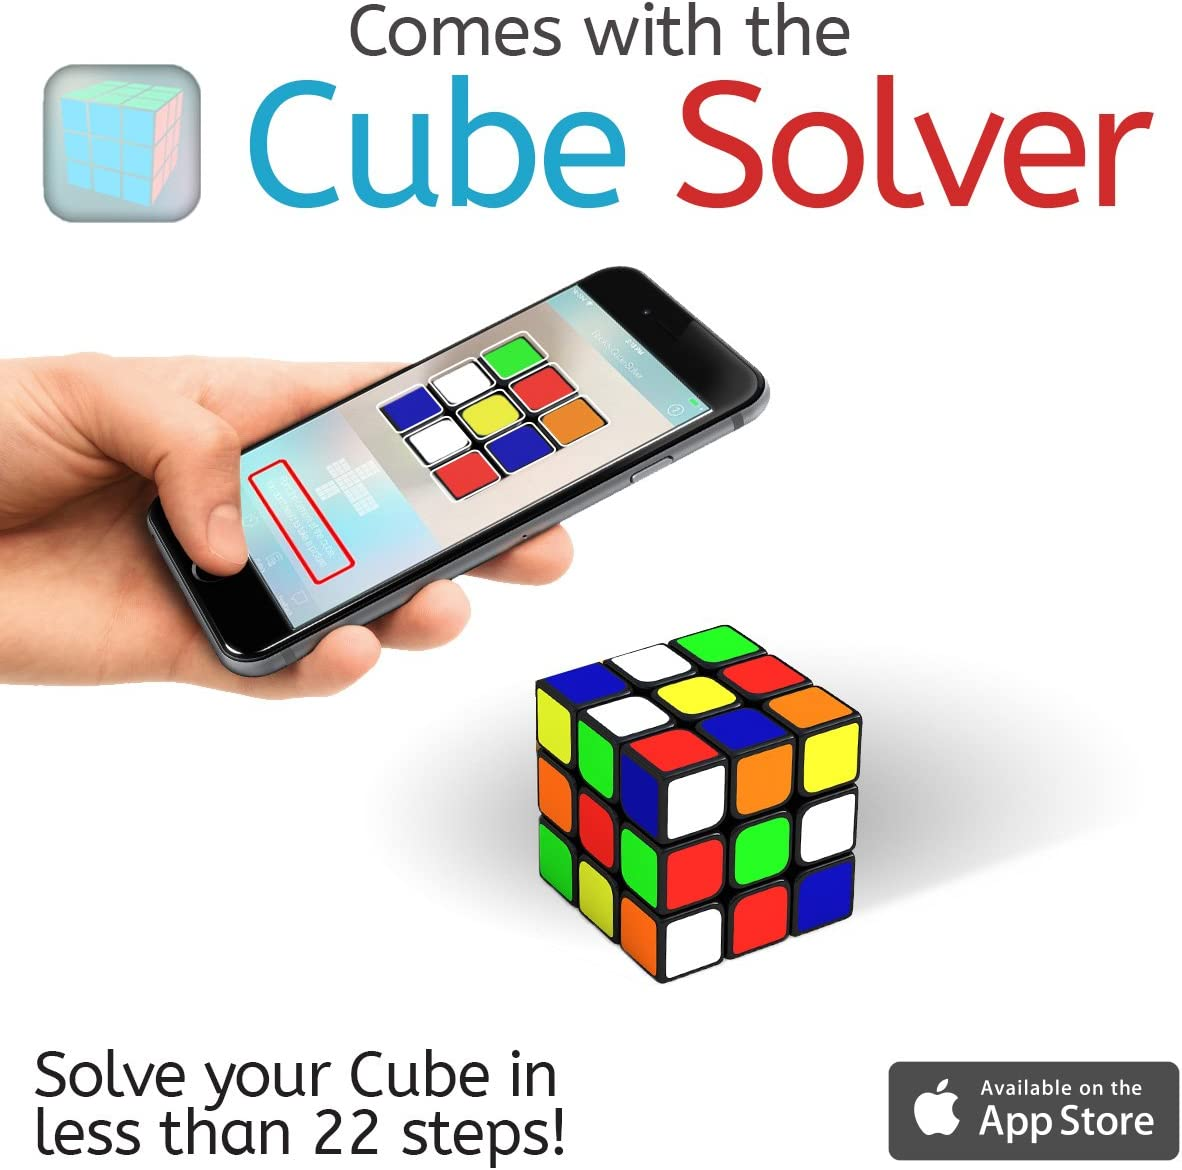 Cube Solver application available in IOS devices